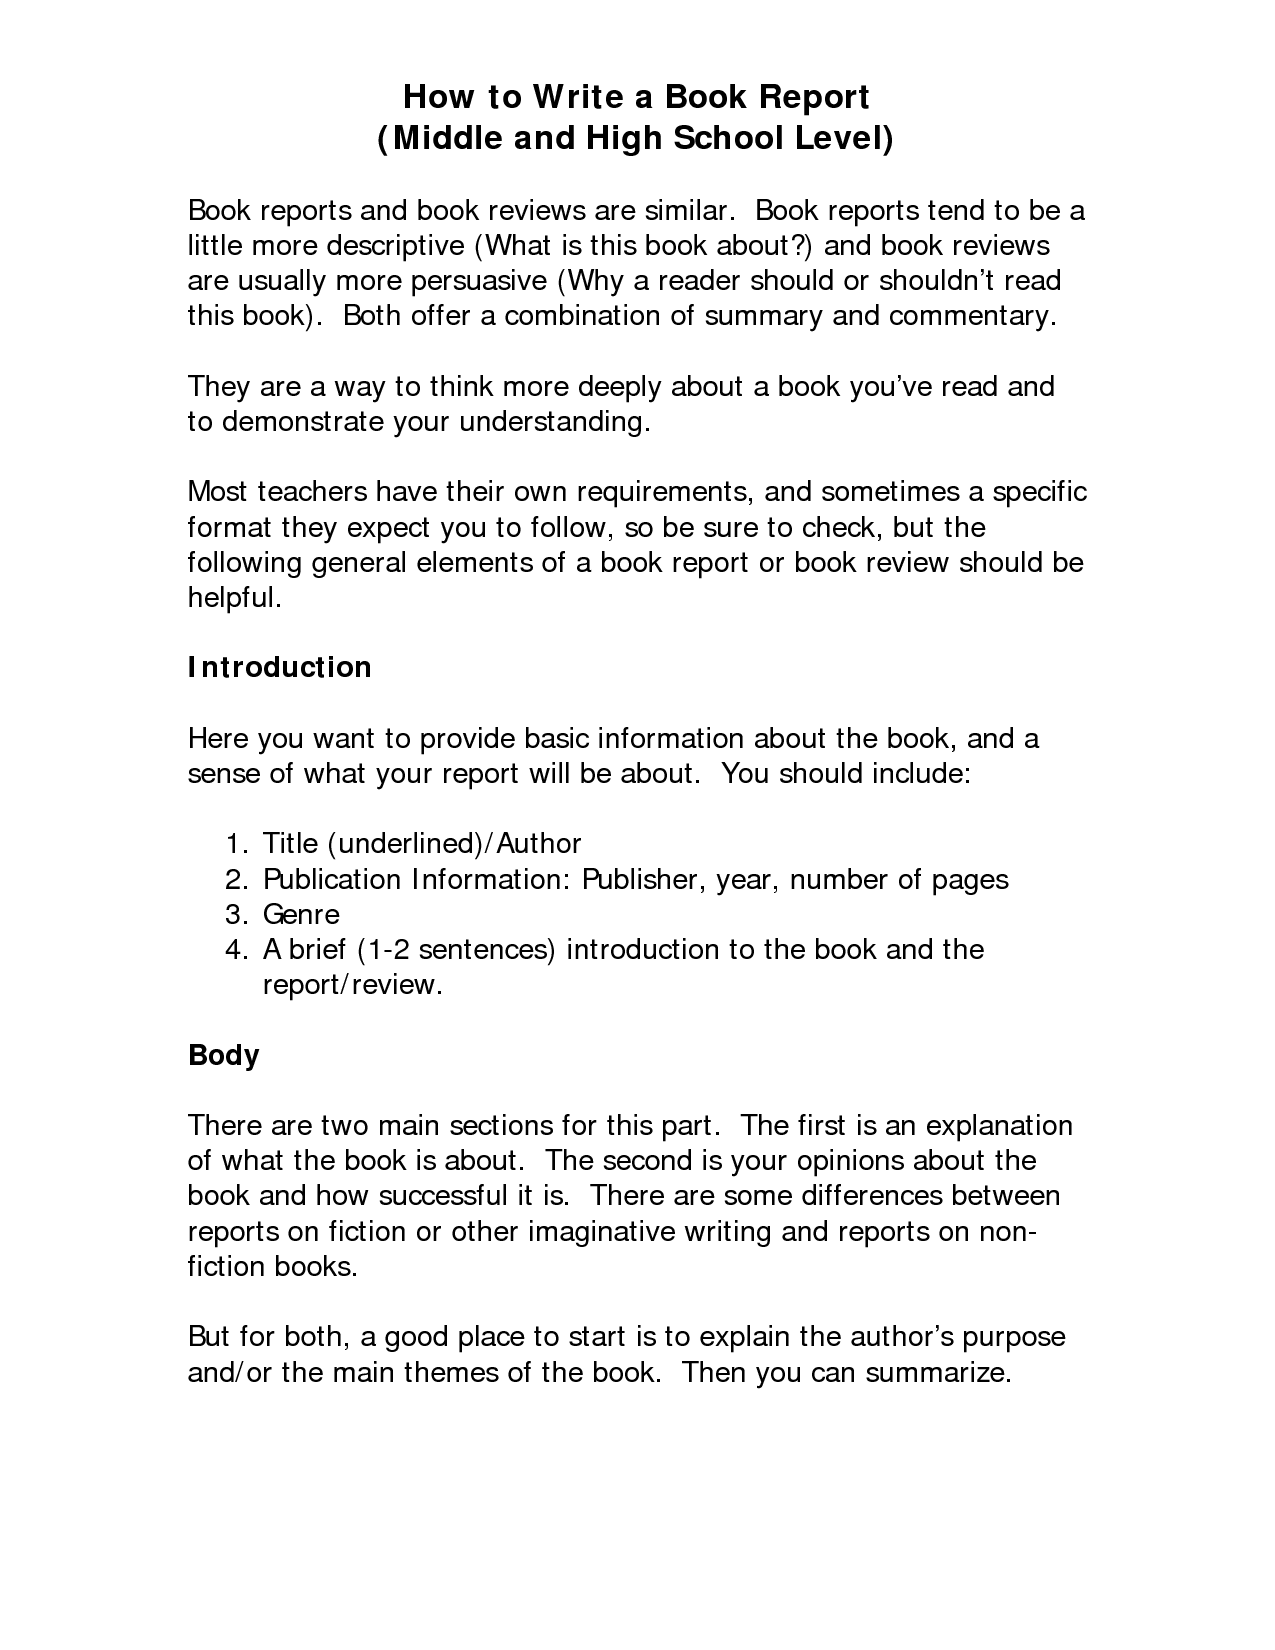 How To Write A Book Report For High School / The Canterbury Tales Essay  High School Book Report Outline